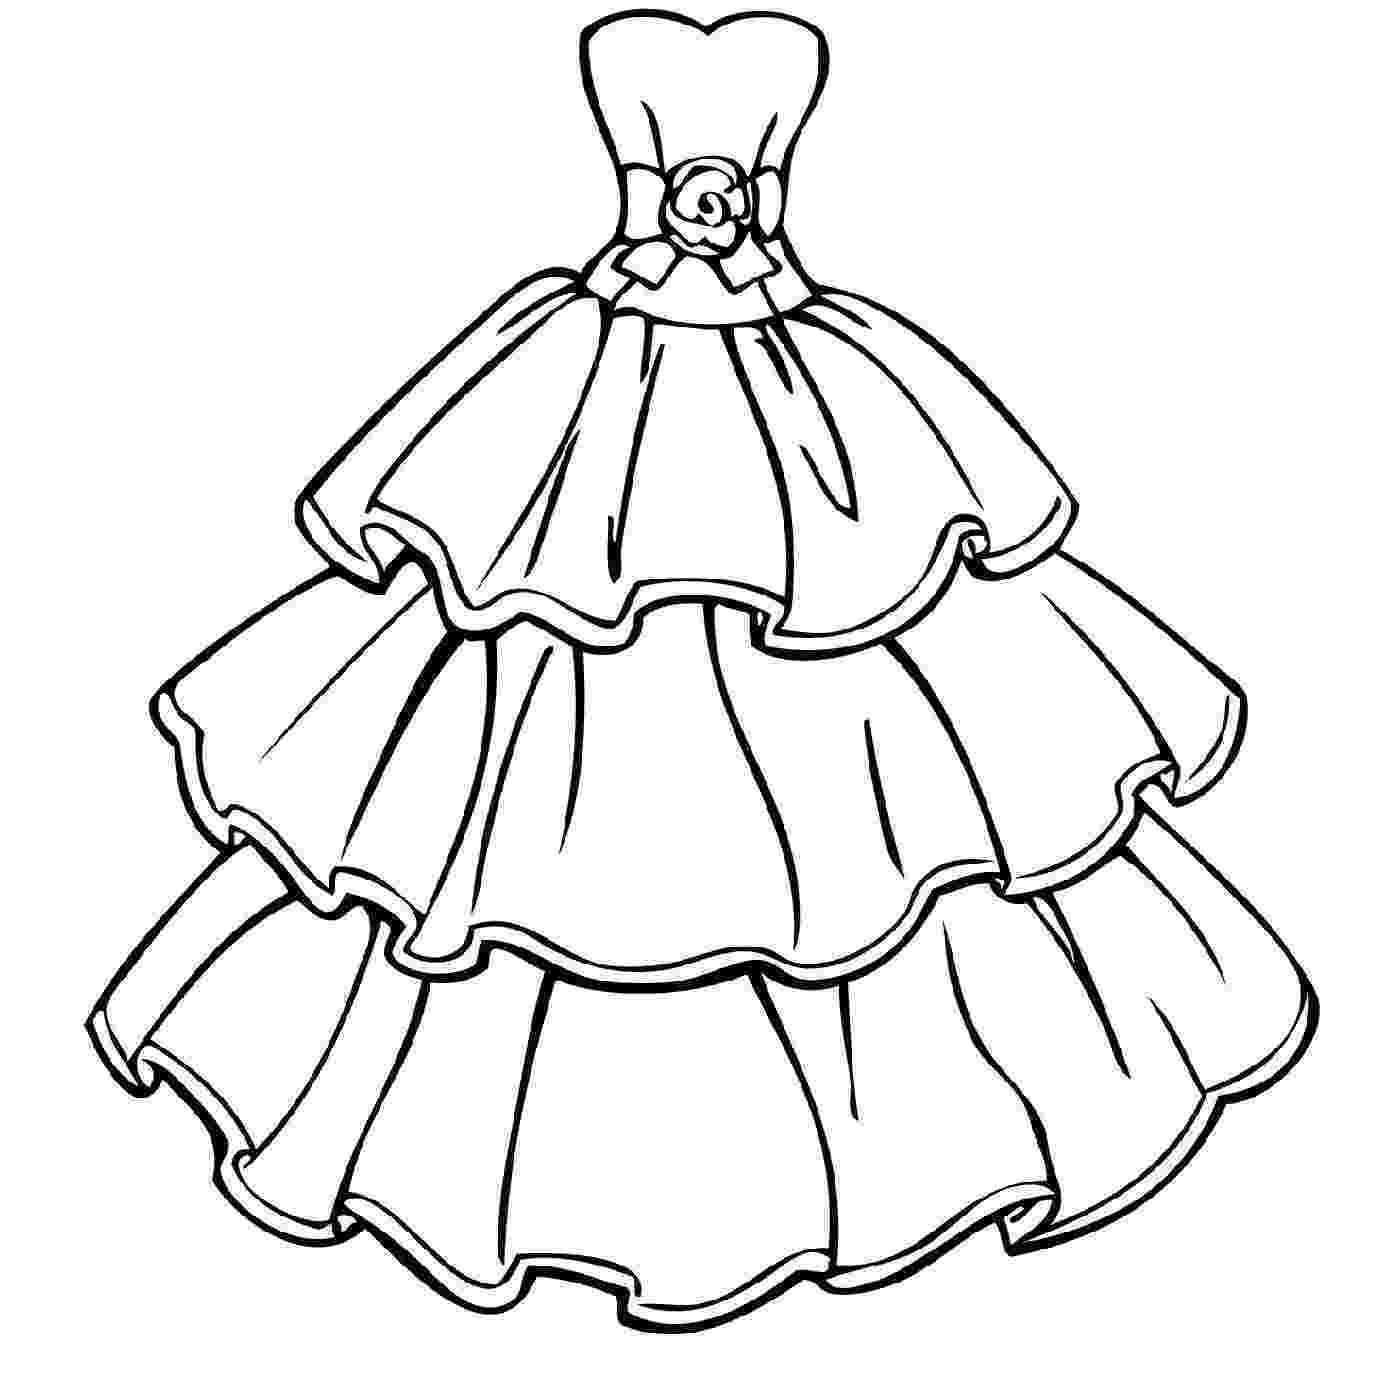 dresses coloring pages dress lace coloring page for girls printable free pages dresses coloring